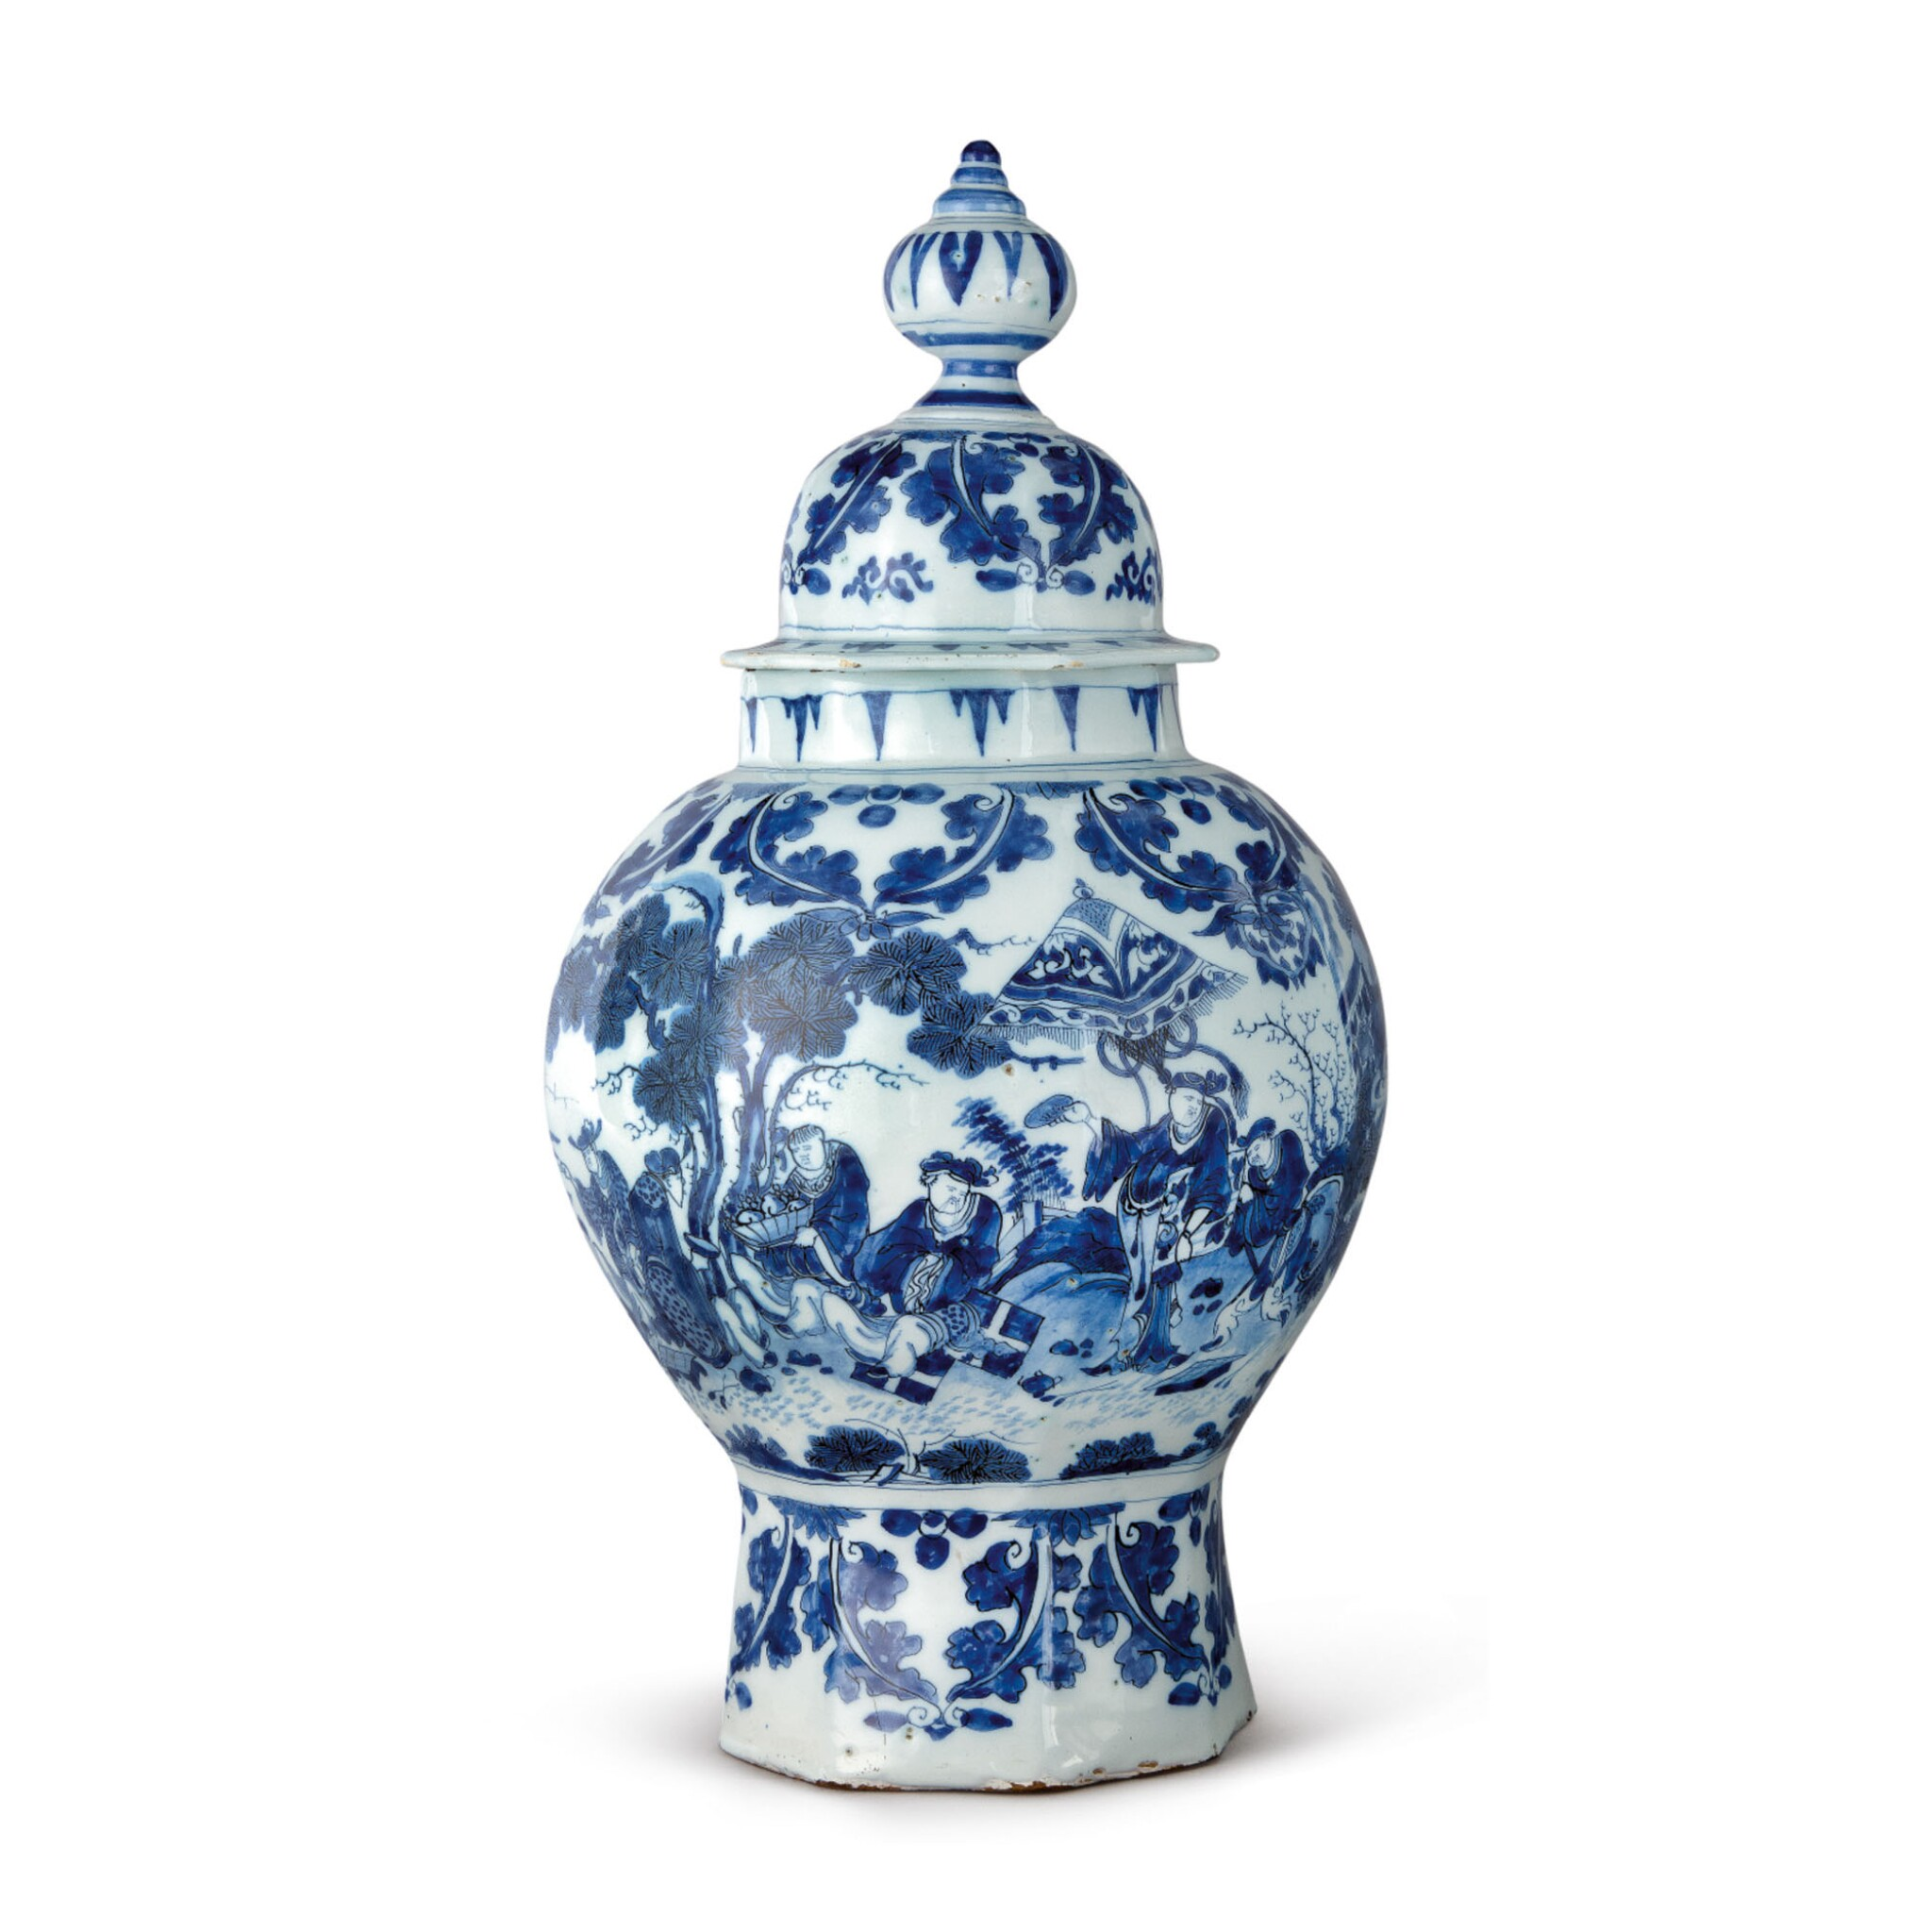 View 1 of Lot 518. A DUTCH DELFT BLUE AND WHITE OCTAGAONAL BALUSTER VASE AND COVER, LATE 17TH CENTURY.